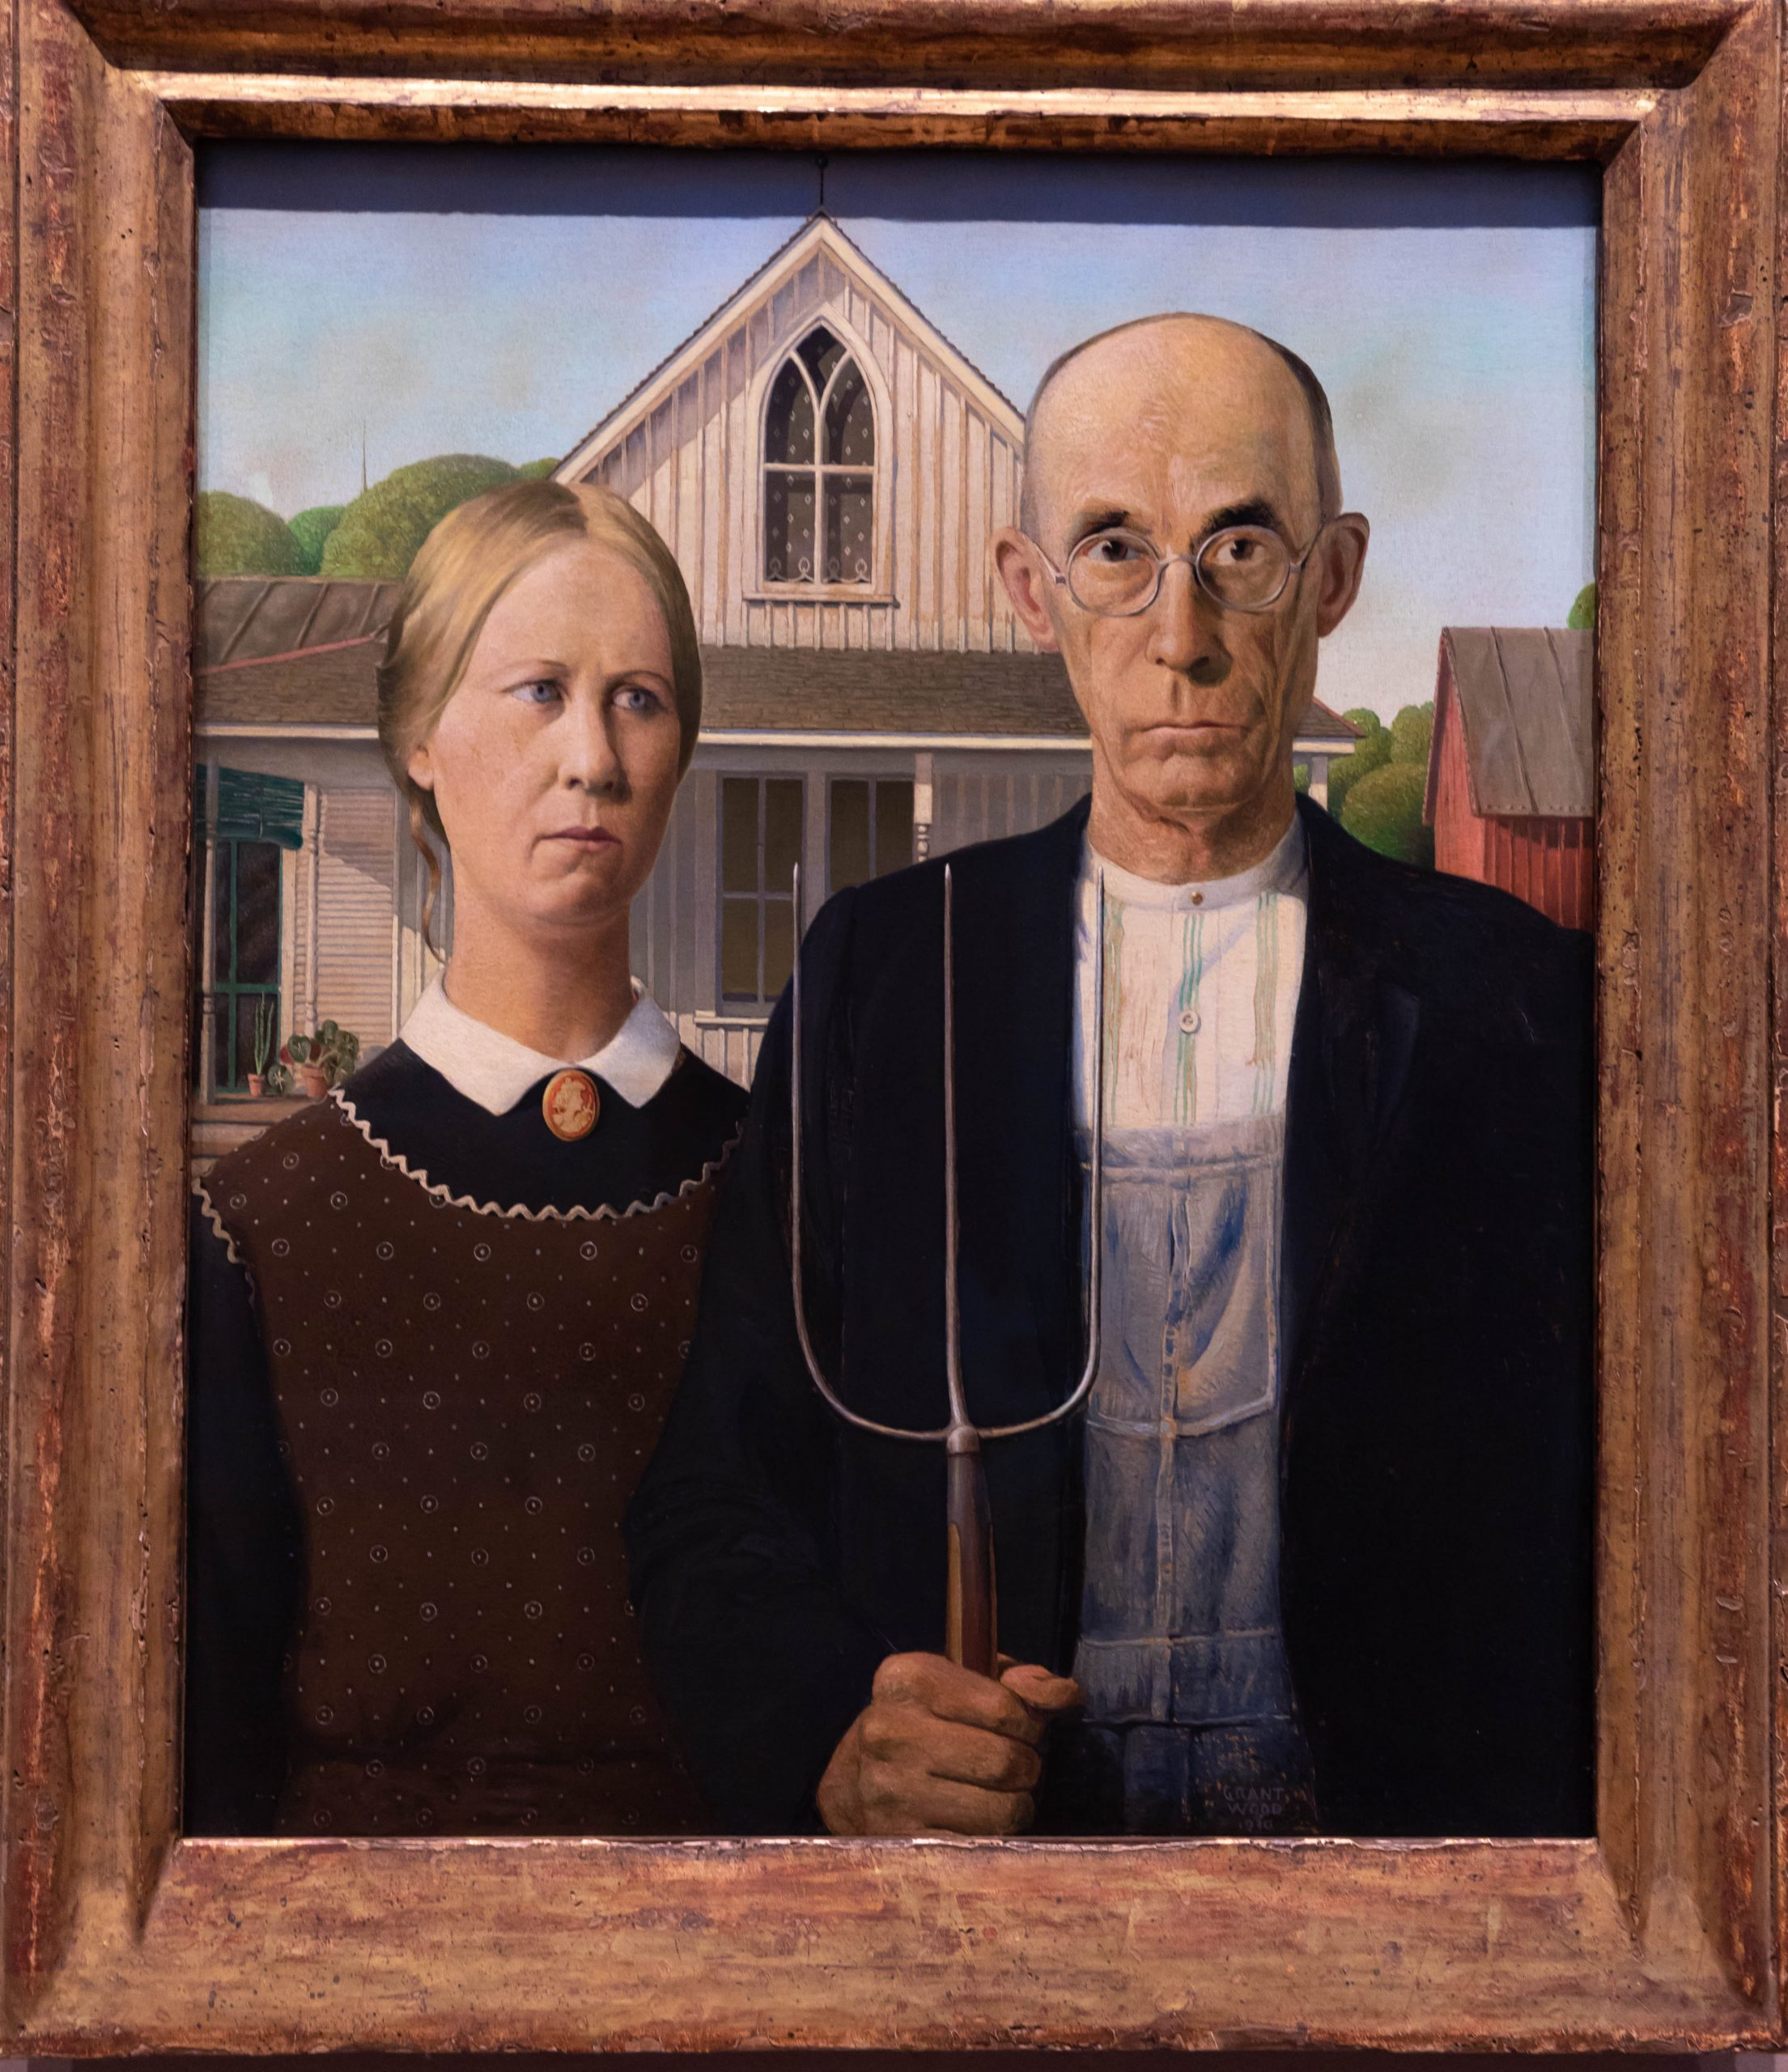 American Gothic The Art Institute of Chicago in Chicago, Illinois by Annie Fairfax